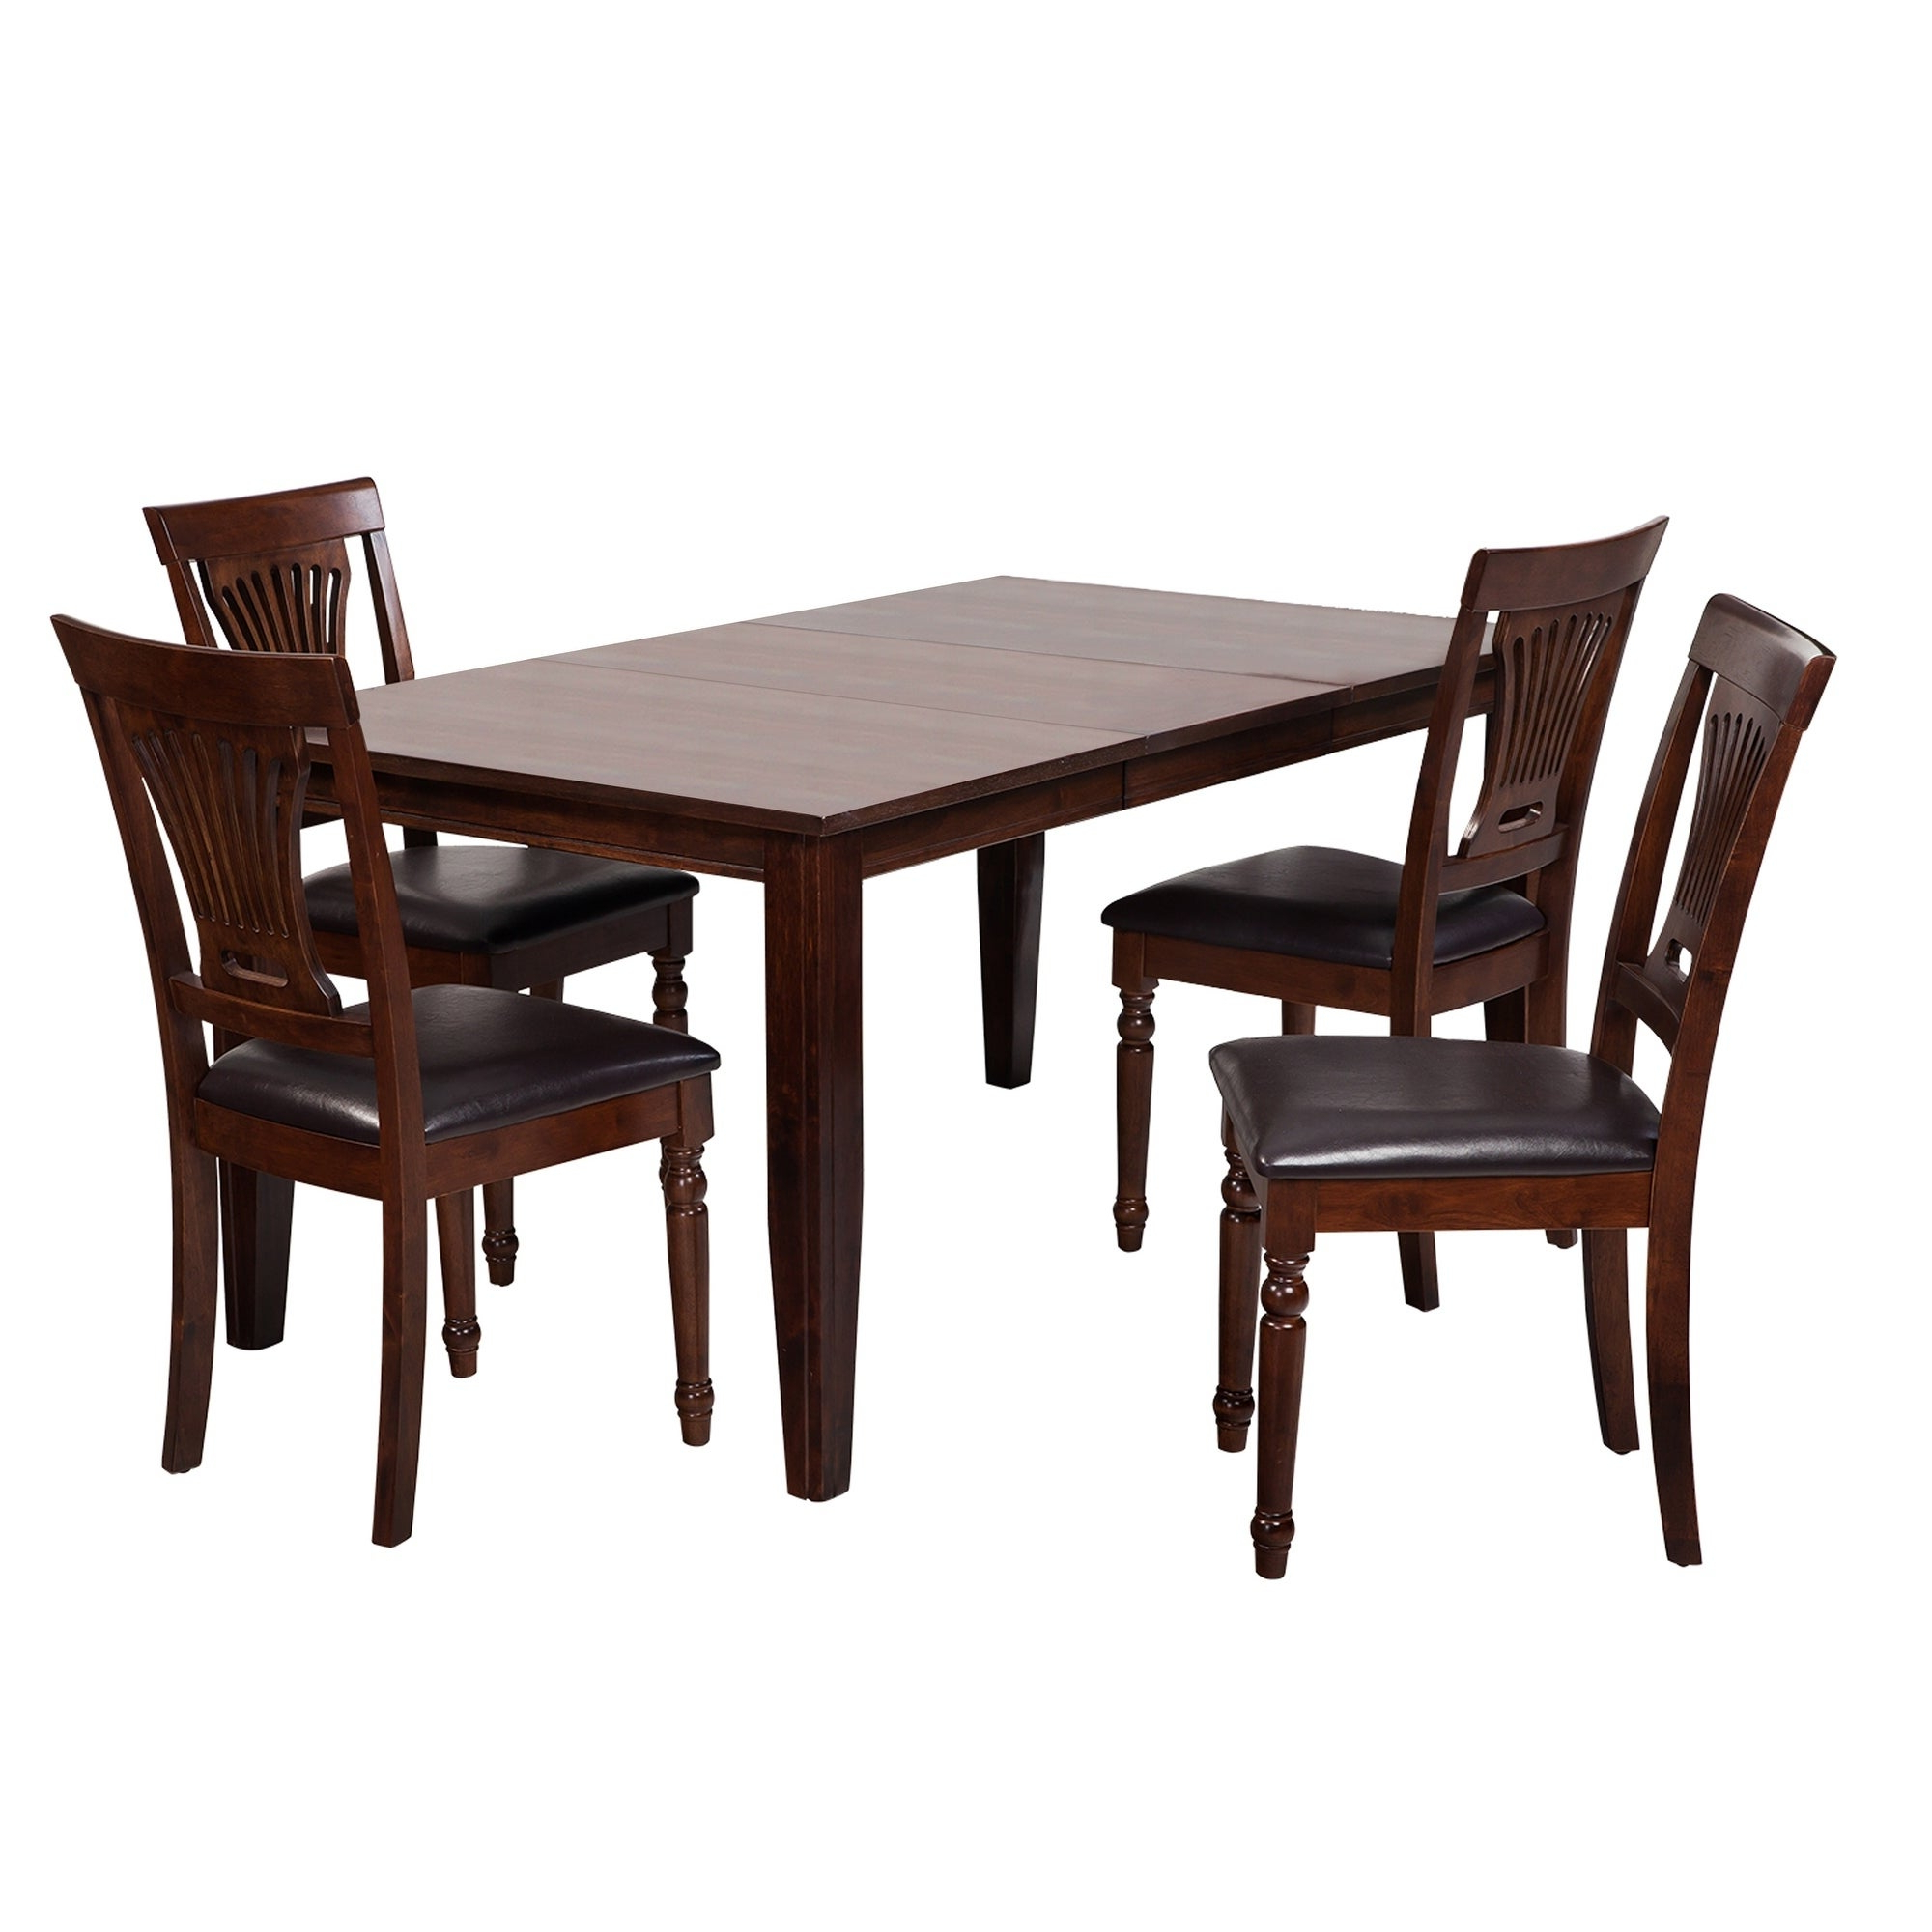 "2019 Adan 5 Piece Solid Wood Dining Sets (Set Of 5) Regarding Shop 5 Piece Solid Wood Dining Set ""aden"", Modern Kitchen Table Set (View 3 of 25)"